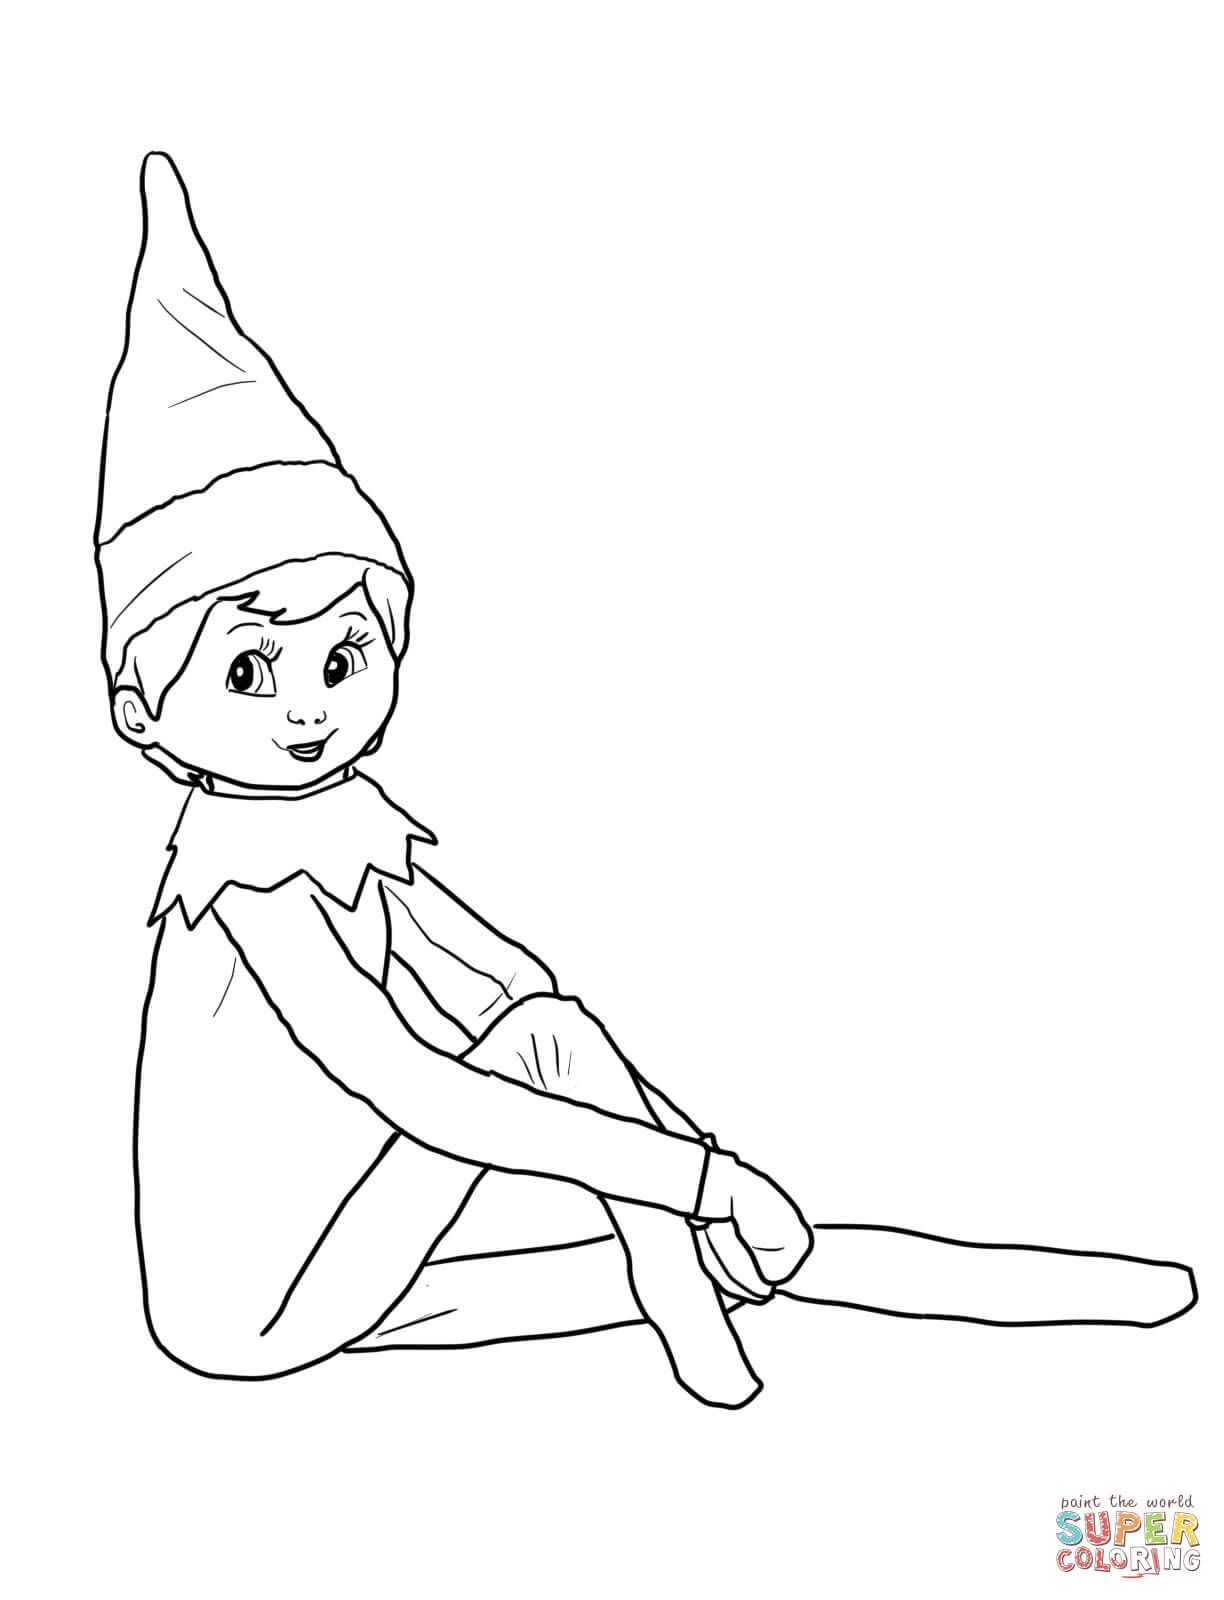 http://colorings.co/elf-on-the-shelf-coloring-pages-for-girls ...